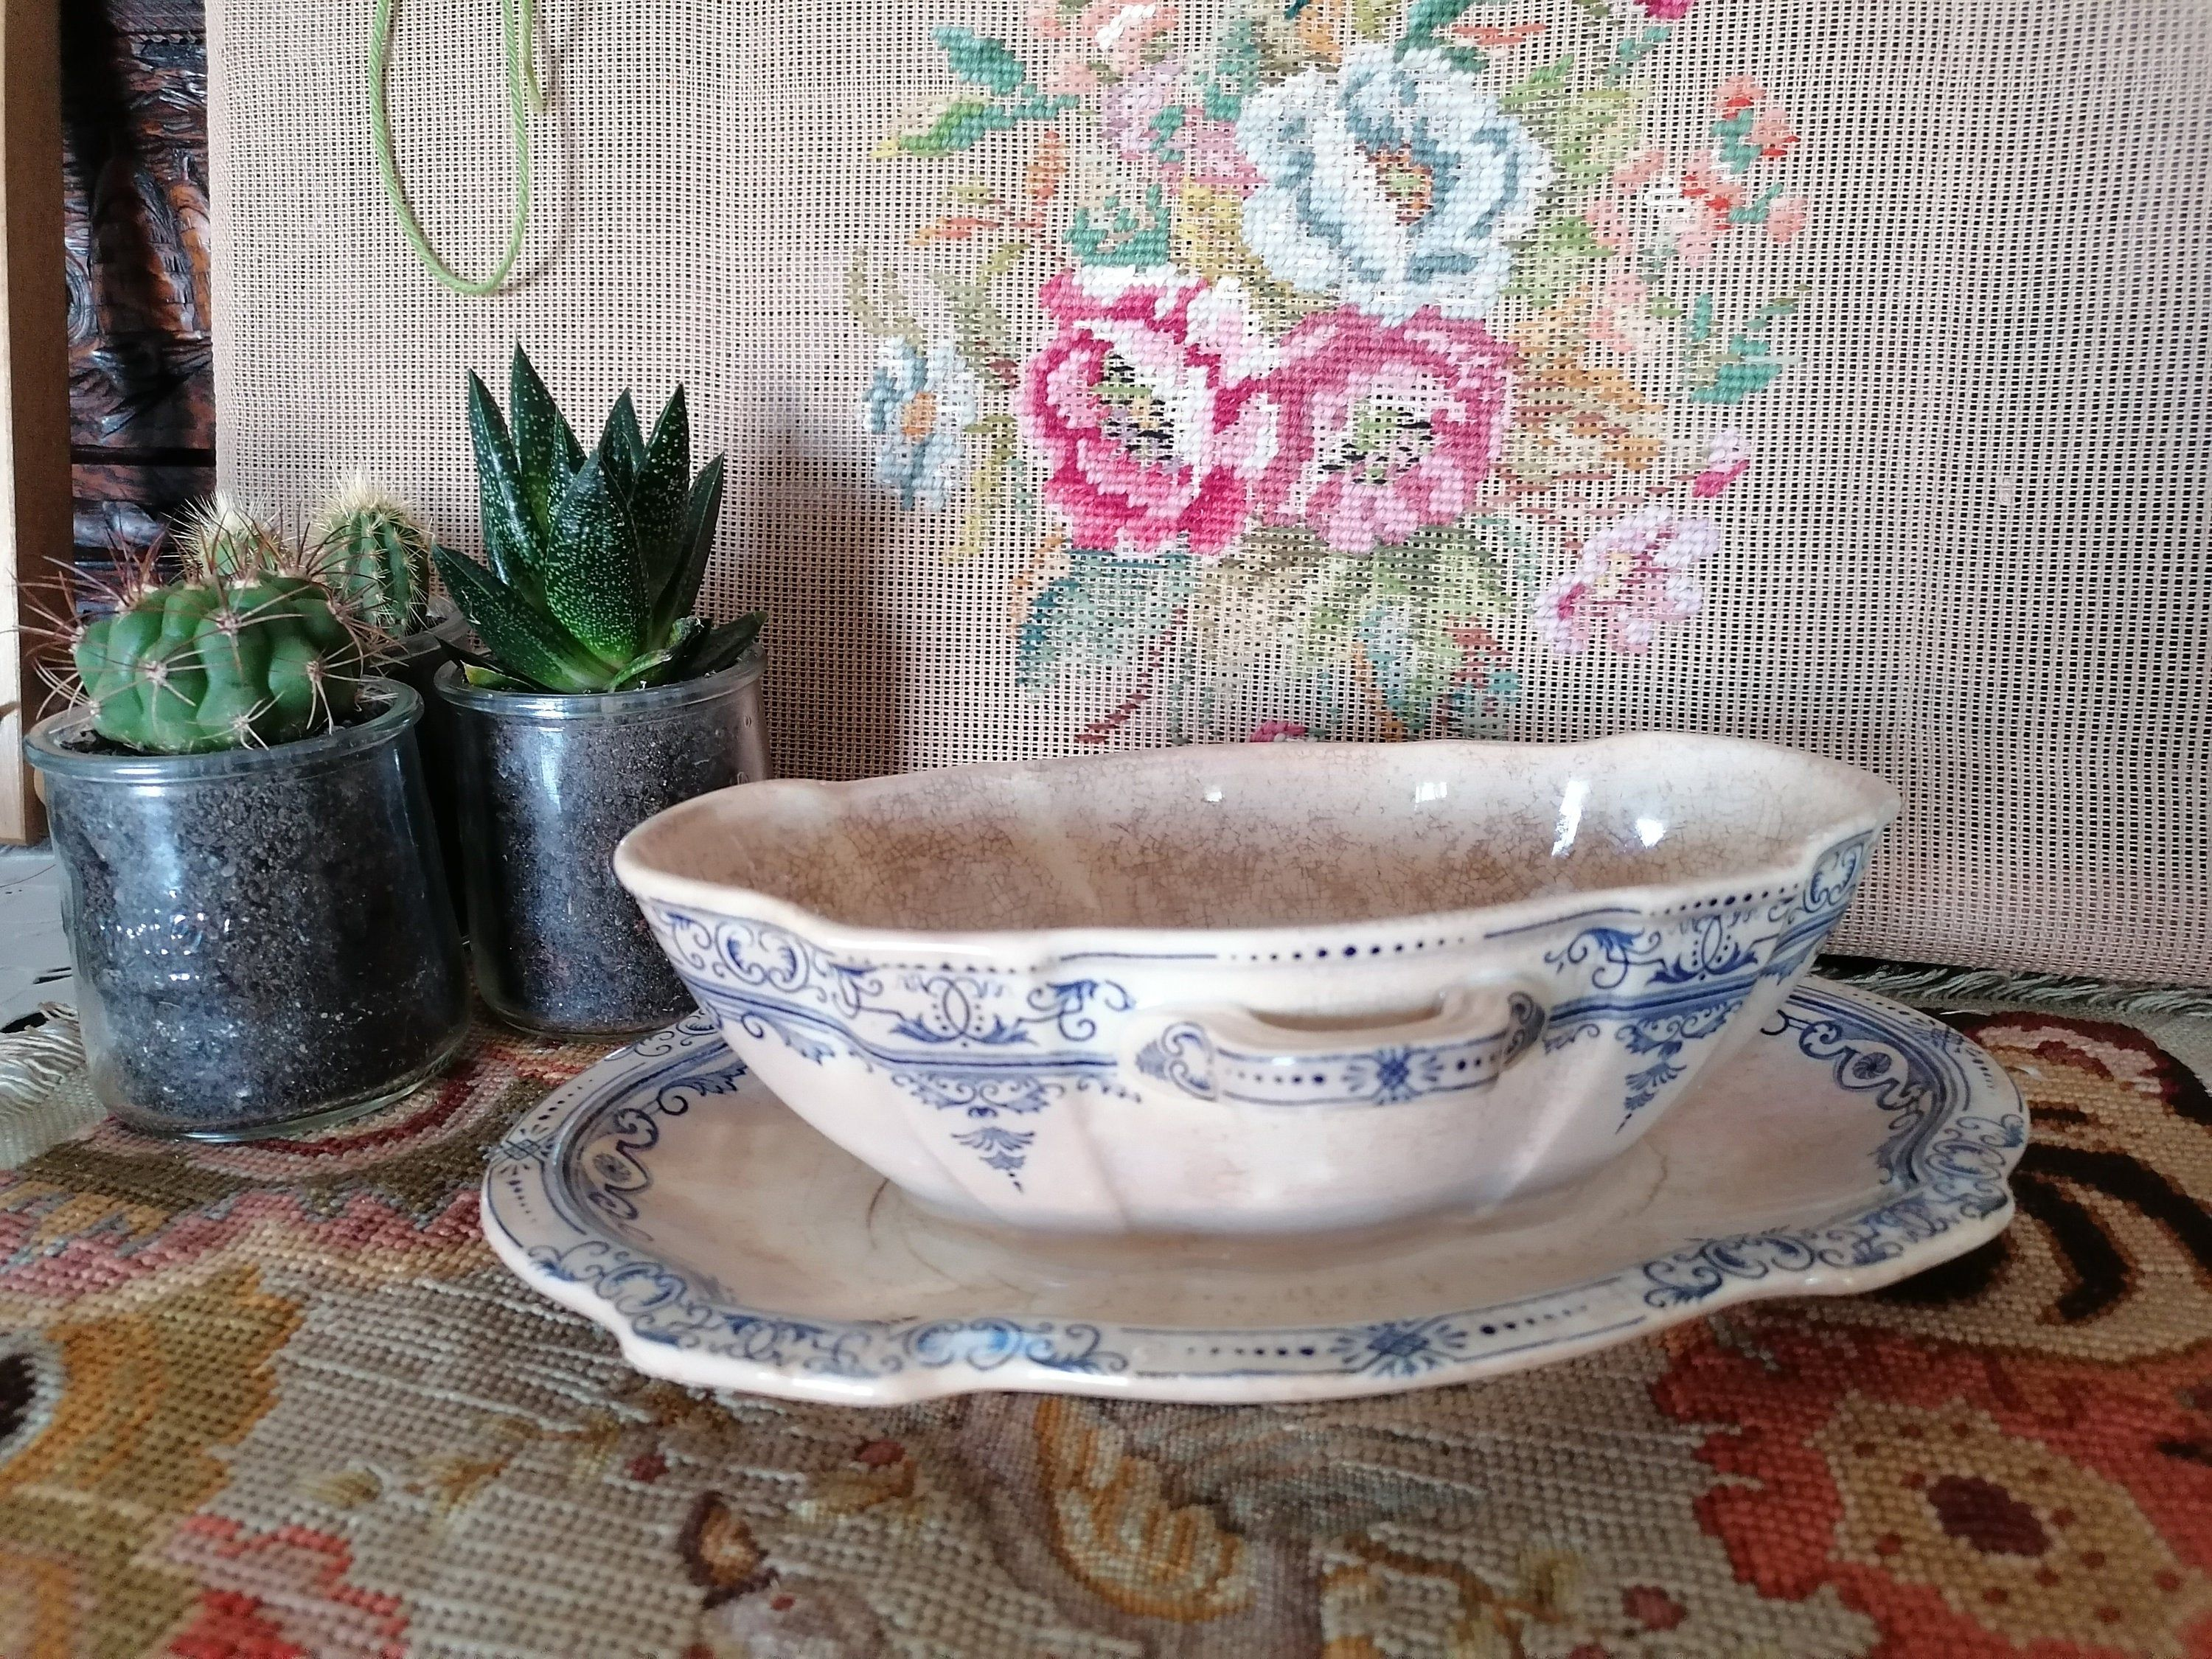 Antique French Sauciere In Faiences Old Table Service The Sauciere Is Attached To The Plate Vintage From The Late 19th Century Antiques Bowl Tableware